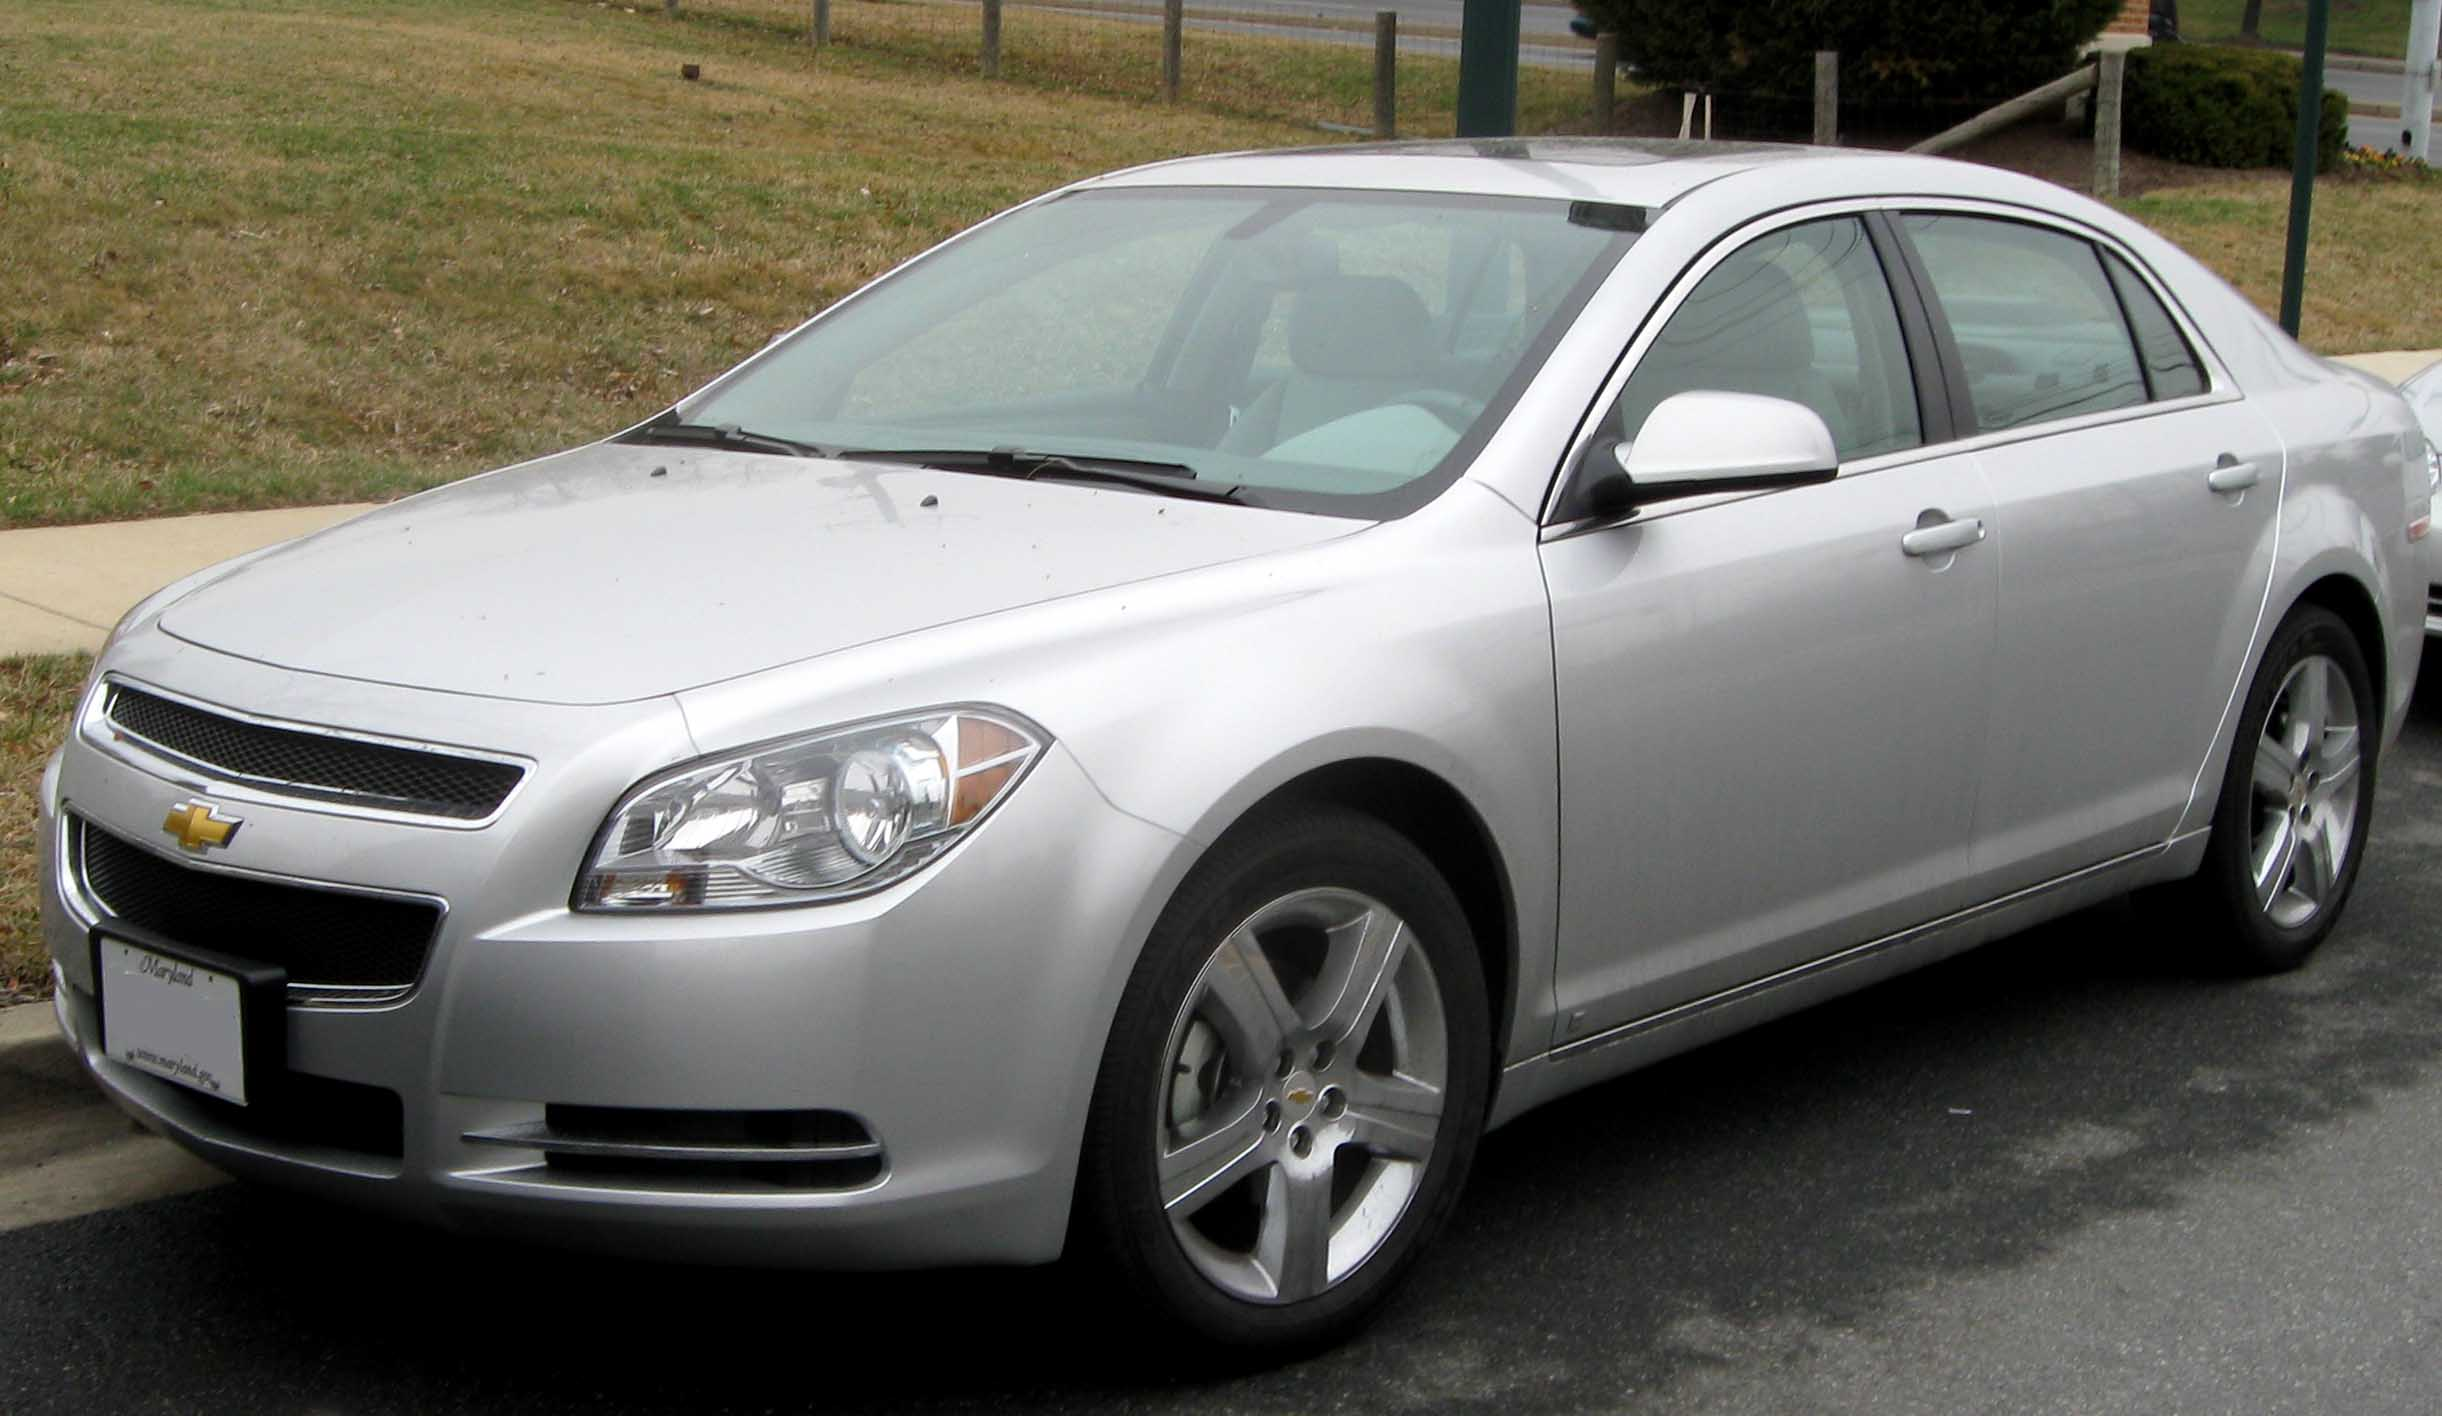 2013 Chevy Malibu Lt >> 2009 Chevrolet Malibu - Information and photos - MOMENTcar